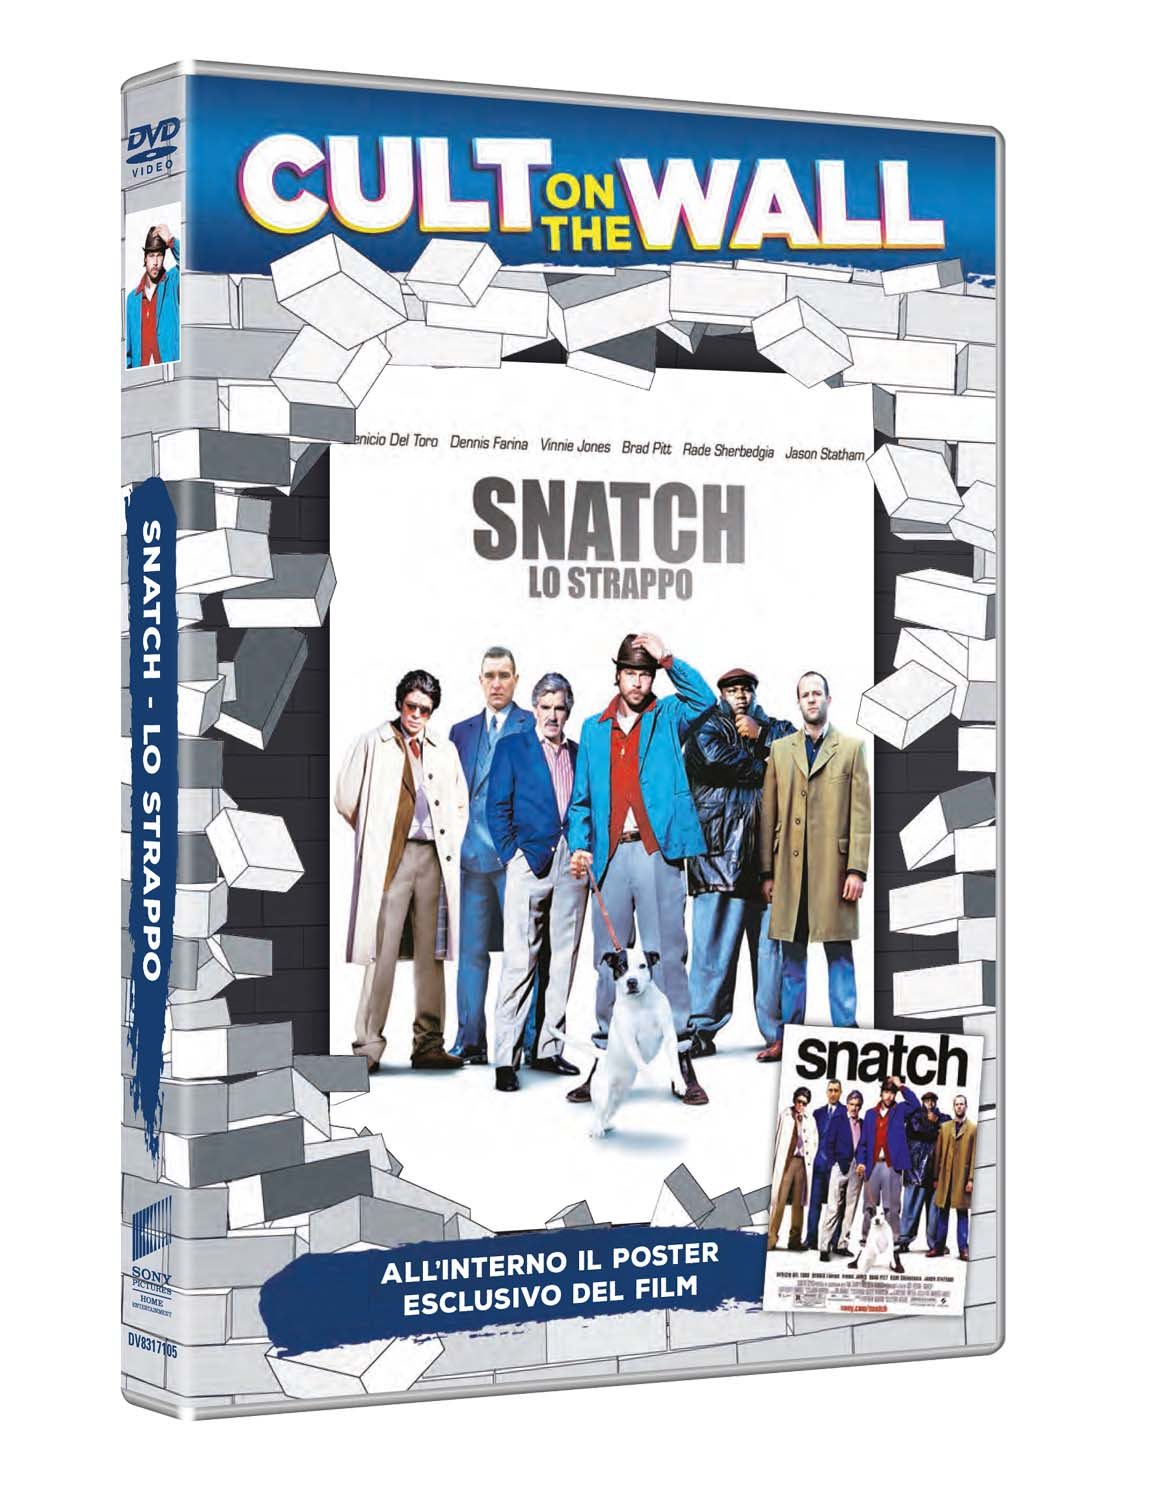 SNATCH - LO STRAPPO (CULT ON THE WALL) (DVD+POSTER) (DVD)